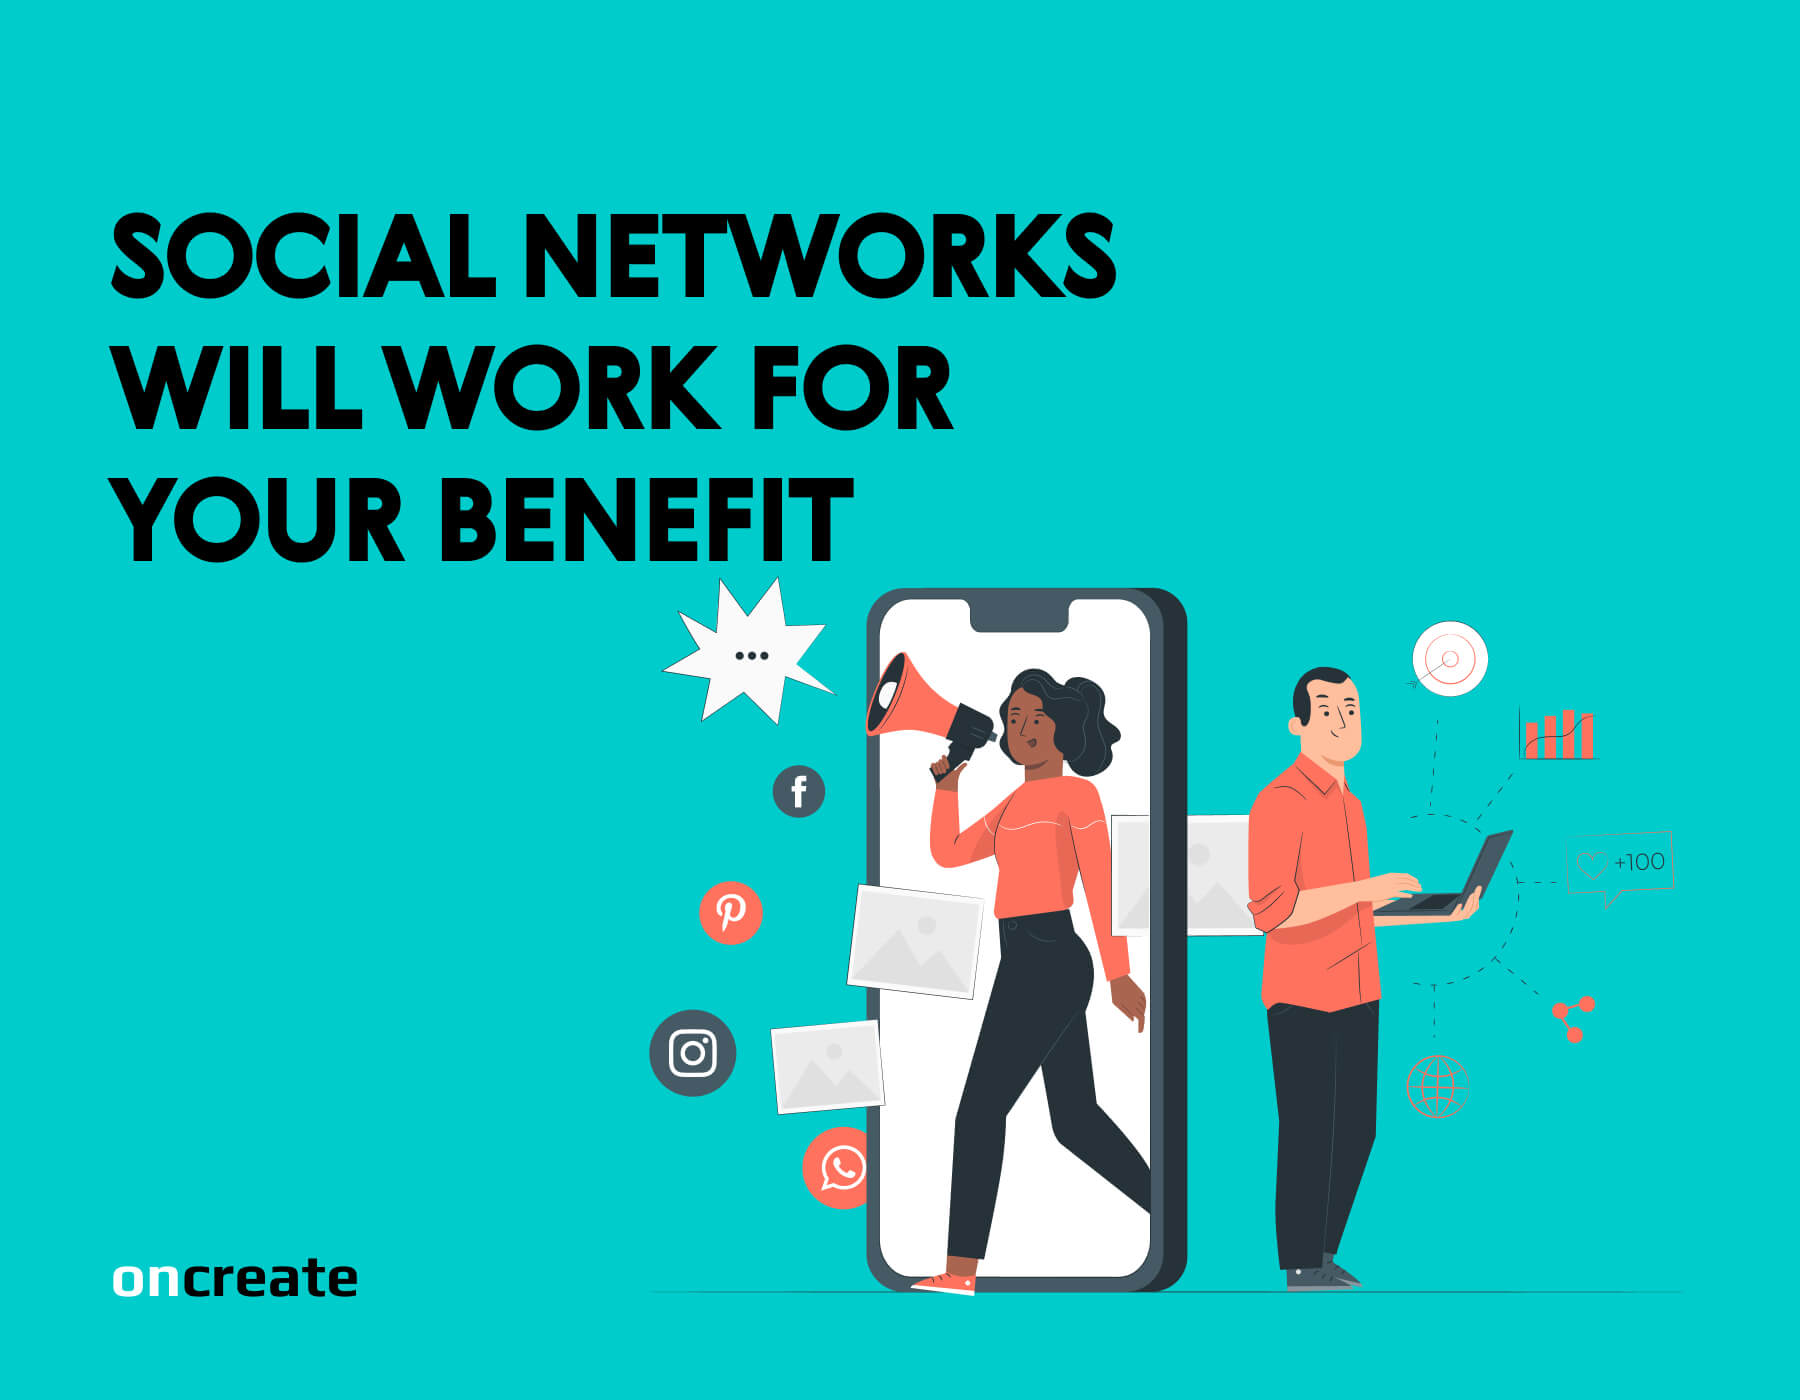 Social Networks will Work for your Benefit